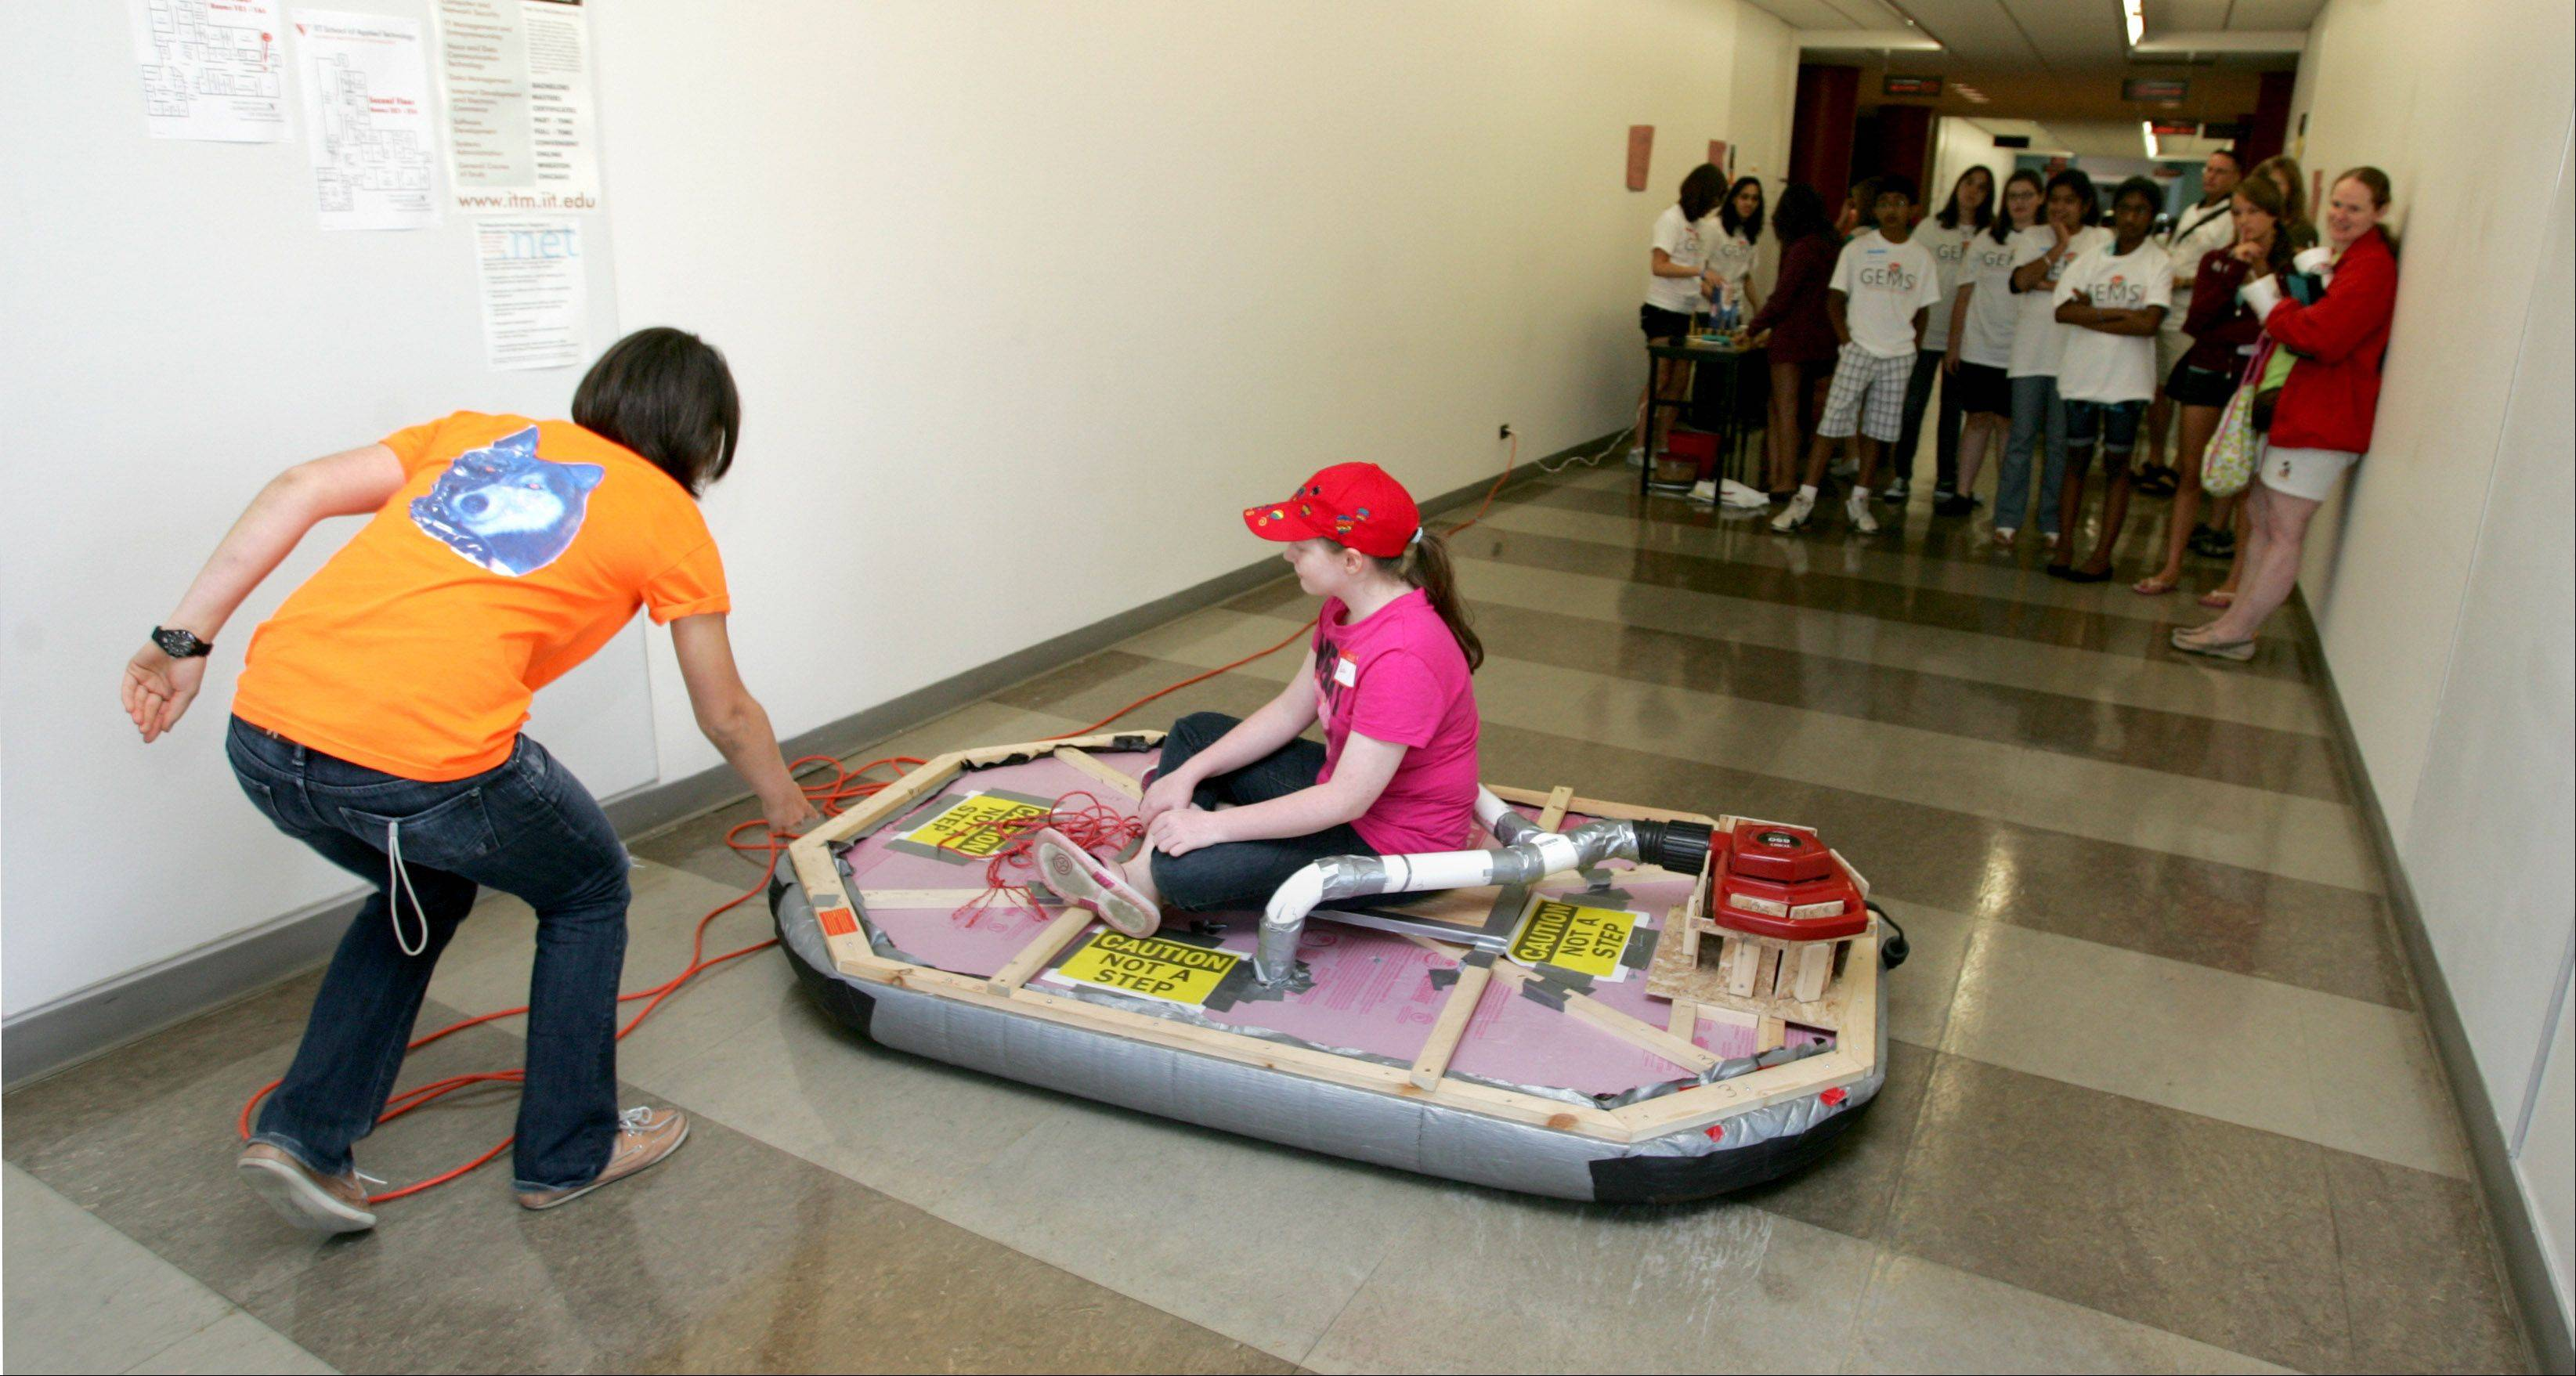 Naperville Central workshop invites girls to explore STEM possibilities